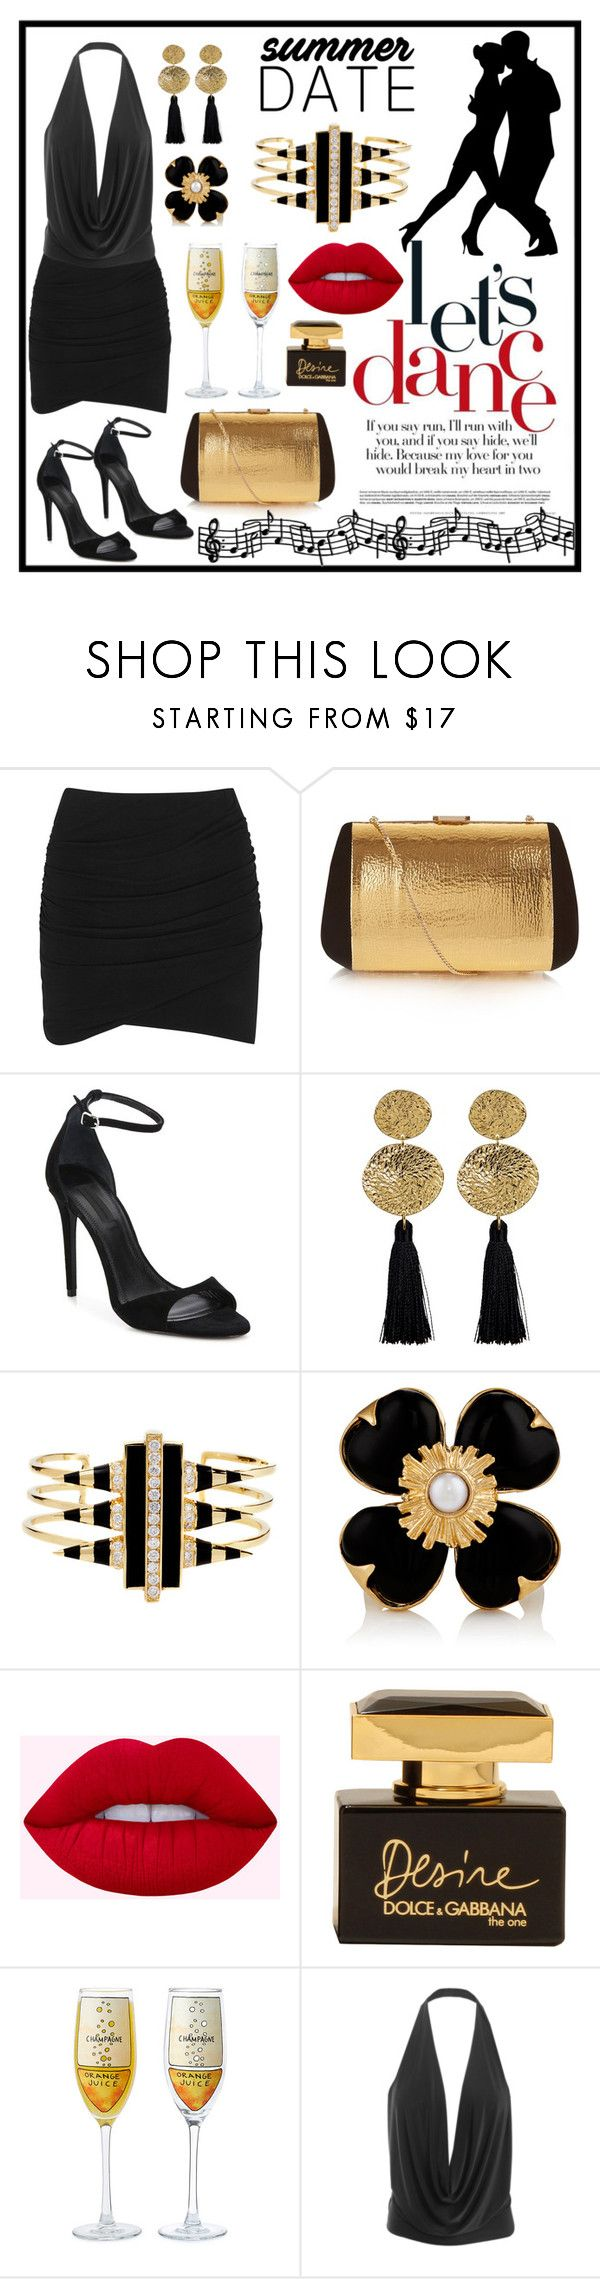 """Smokin' Hot: Summer Date Night"" by terryandjim ❤ liked on Polyvore featuring James Perse, Nina Ricci, Alexander Wang, Gorjana, Noir Jewelry, Goossens, Dolce&Gabbana, LE3NO and summerdatenight"